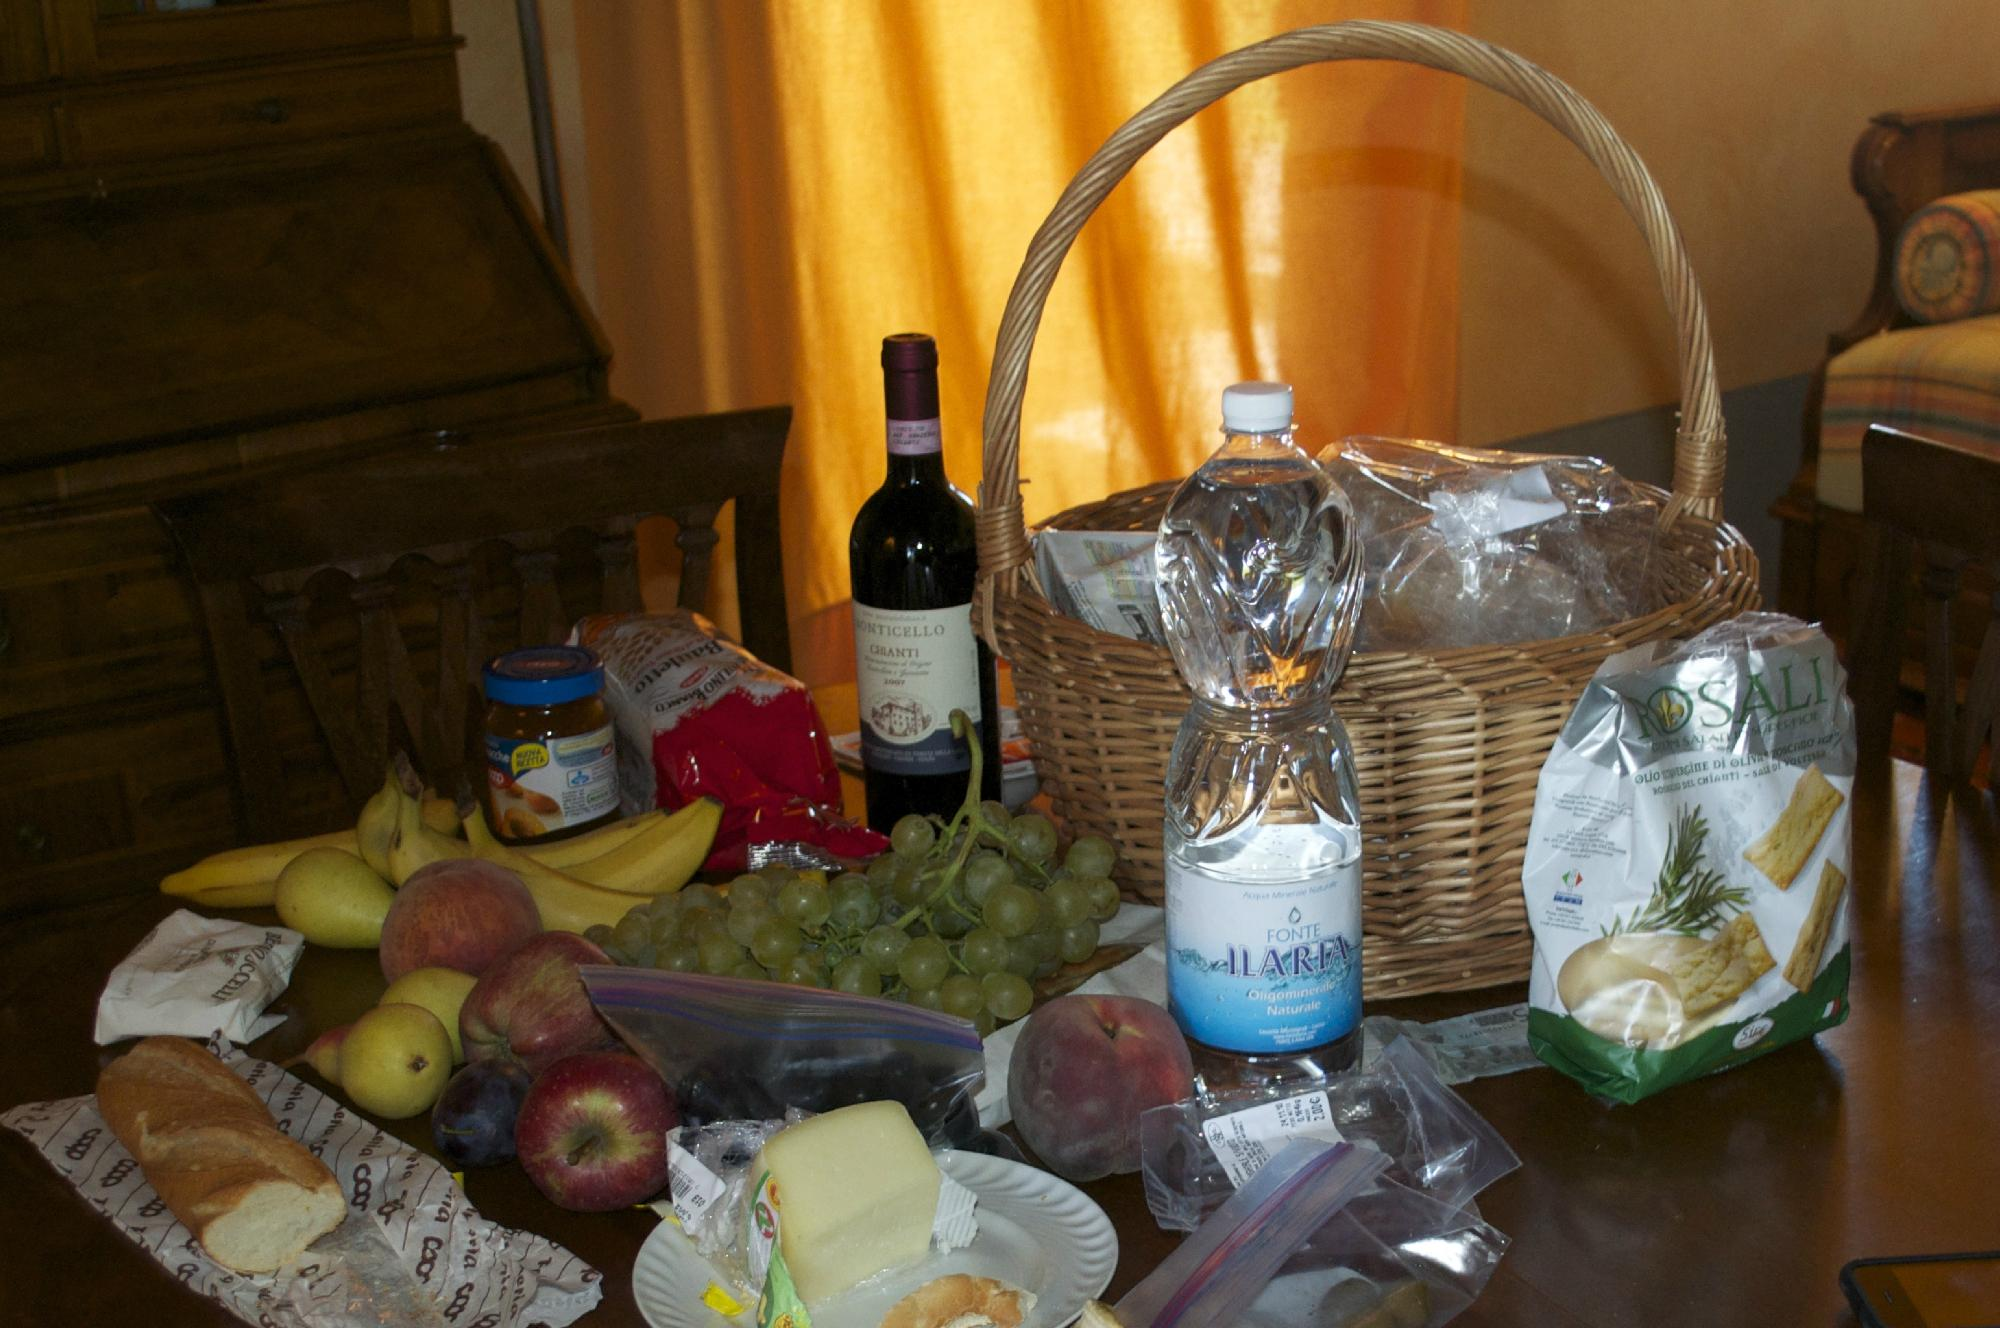 divina cucina (certaldo, italy): top tips before you go - tripadvisor - Divisa Cucina